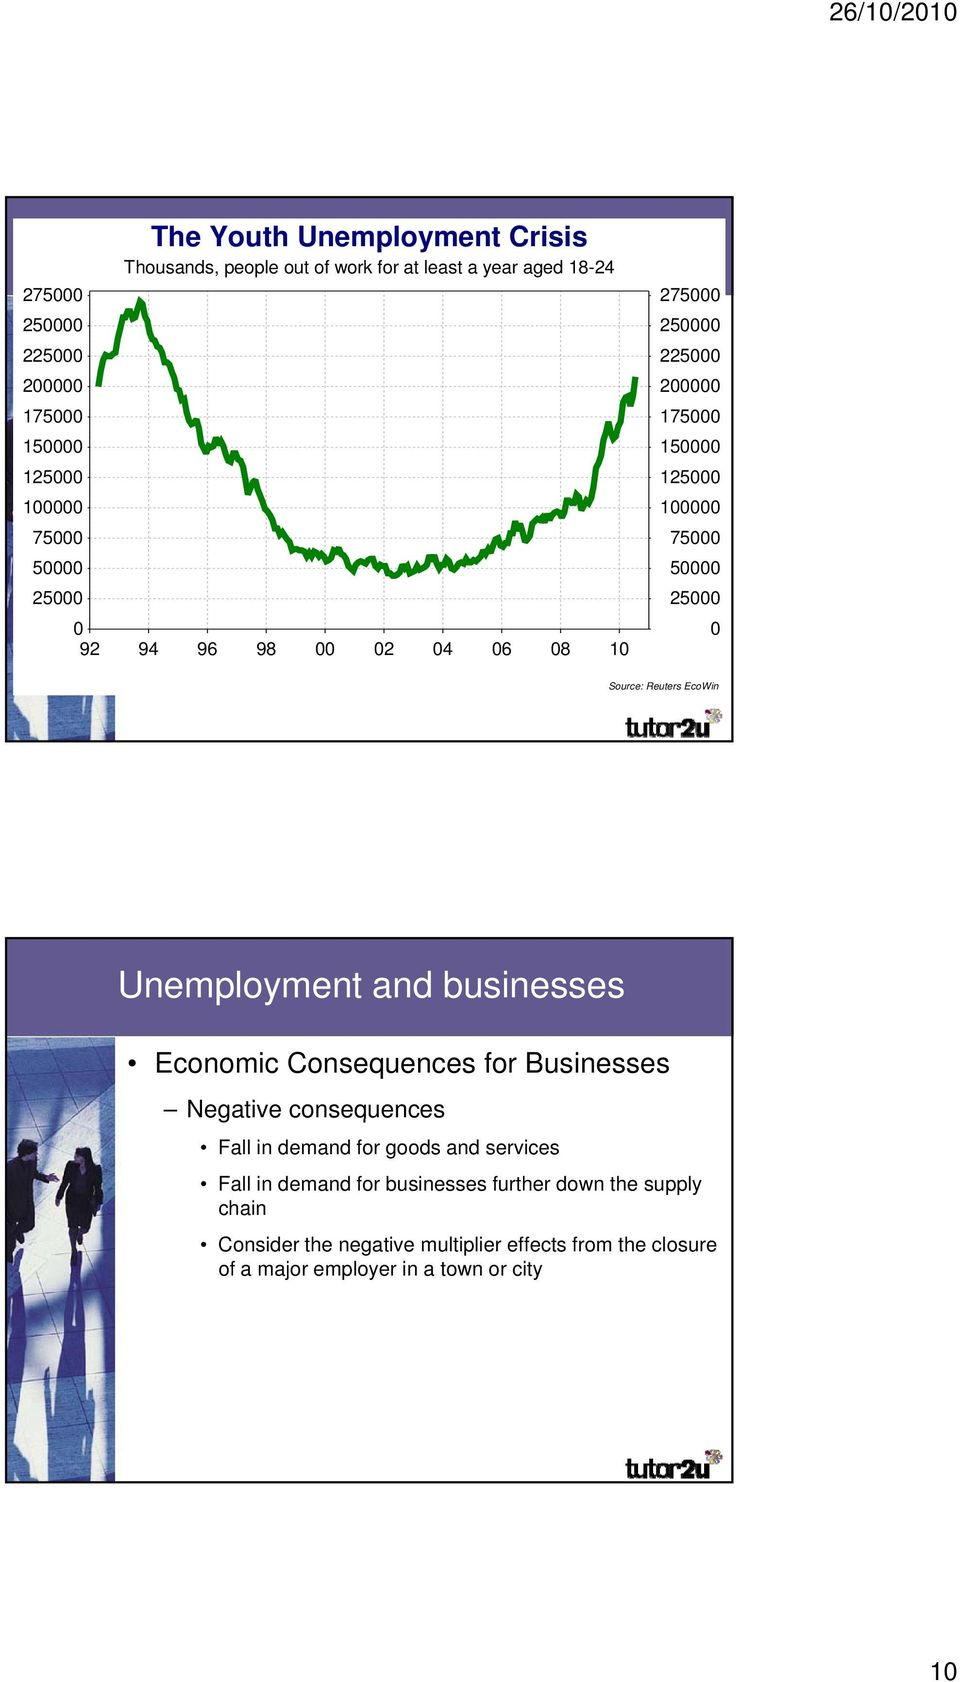 Reuters EcoWin Unemployment and businesses Economic Consequences for Businesses Negative consequences Fall in demand for goods and services Fall in